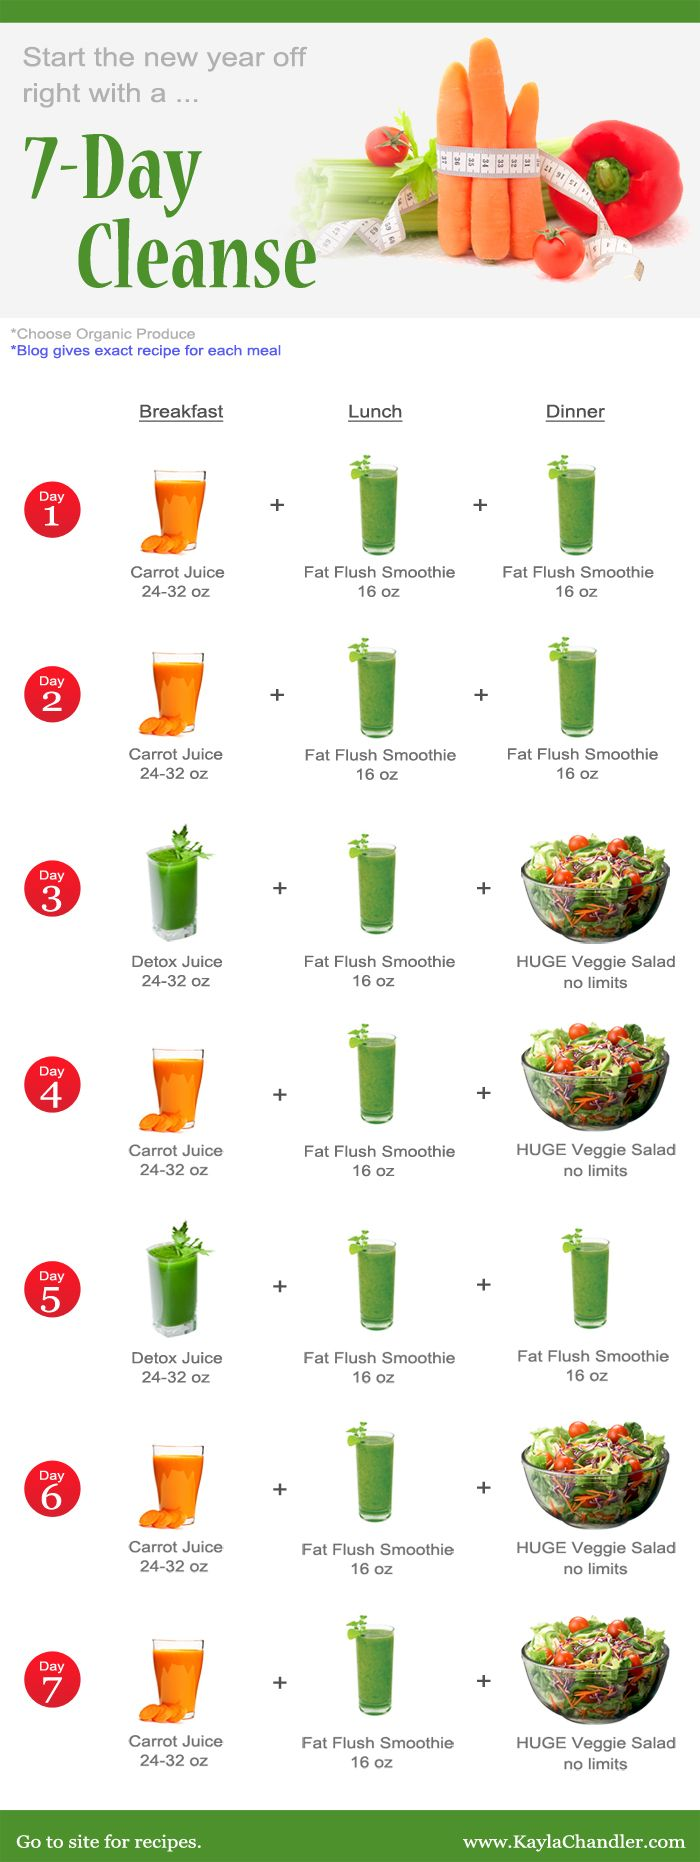 Best 25+ Smoothie diet ideas on Pinterest | Healthy smoothie recipes, Smoothie cleanse and ...